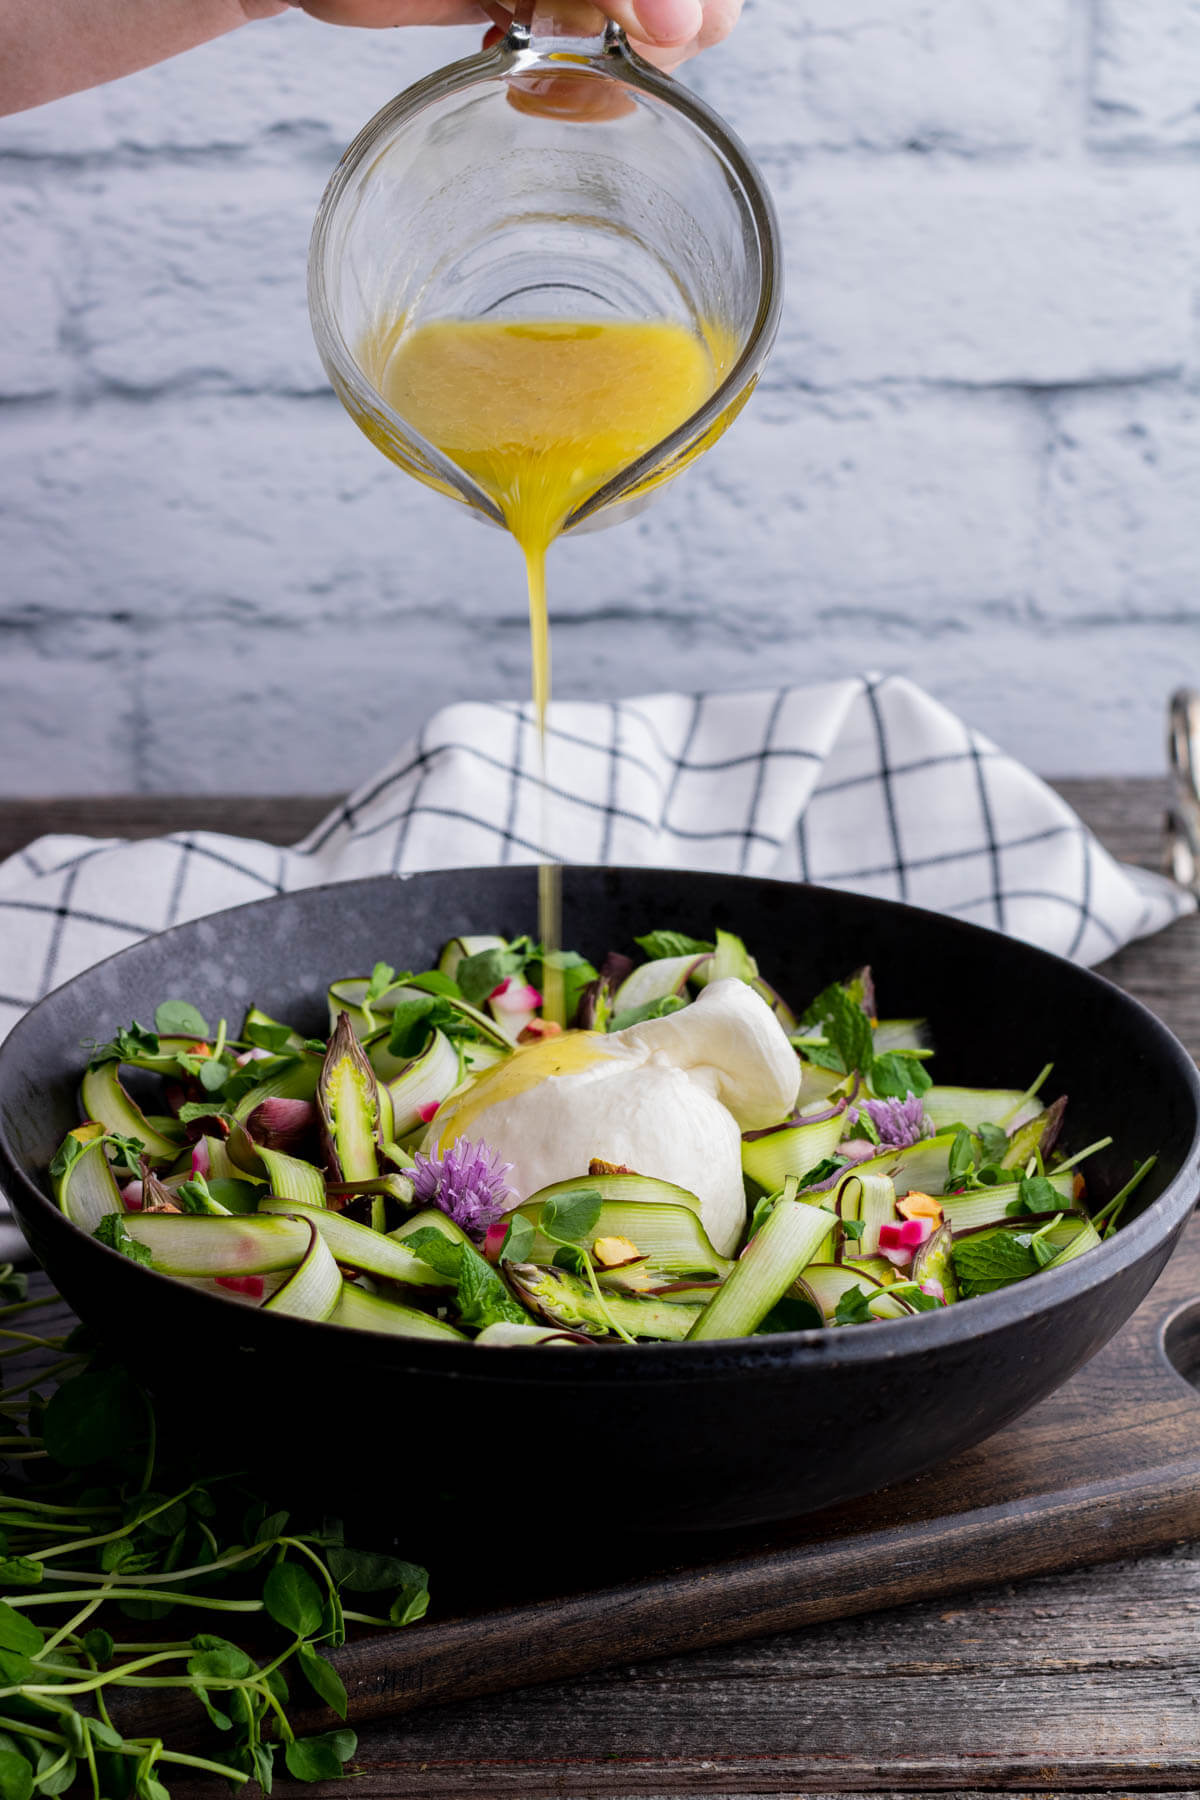 A simple mustard vinaigrette being poured over a Shaved Asparagus Salad.